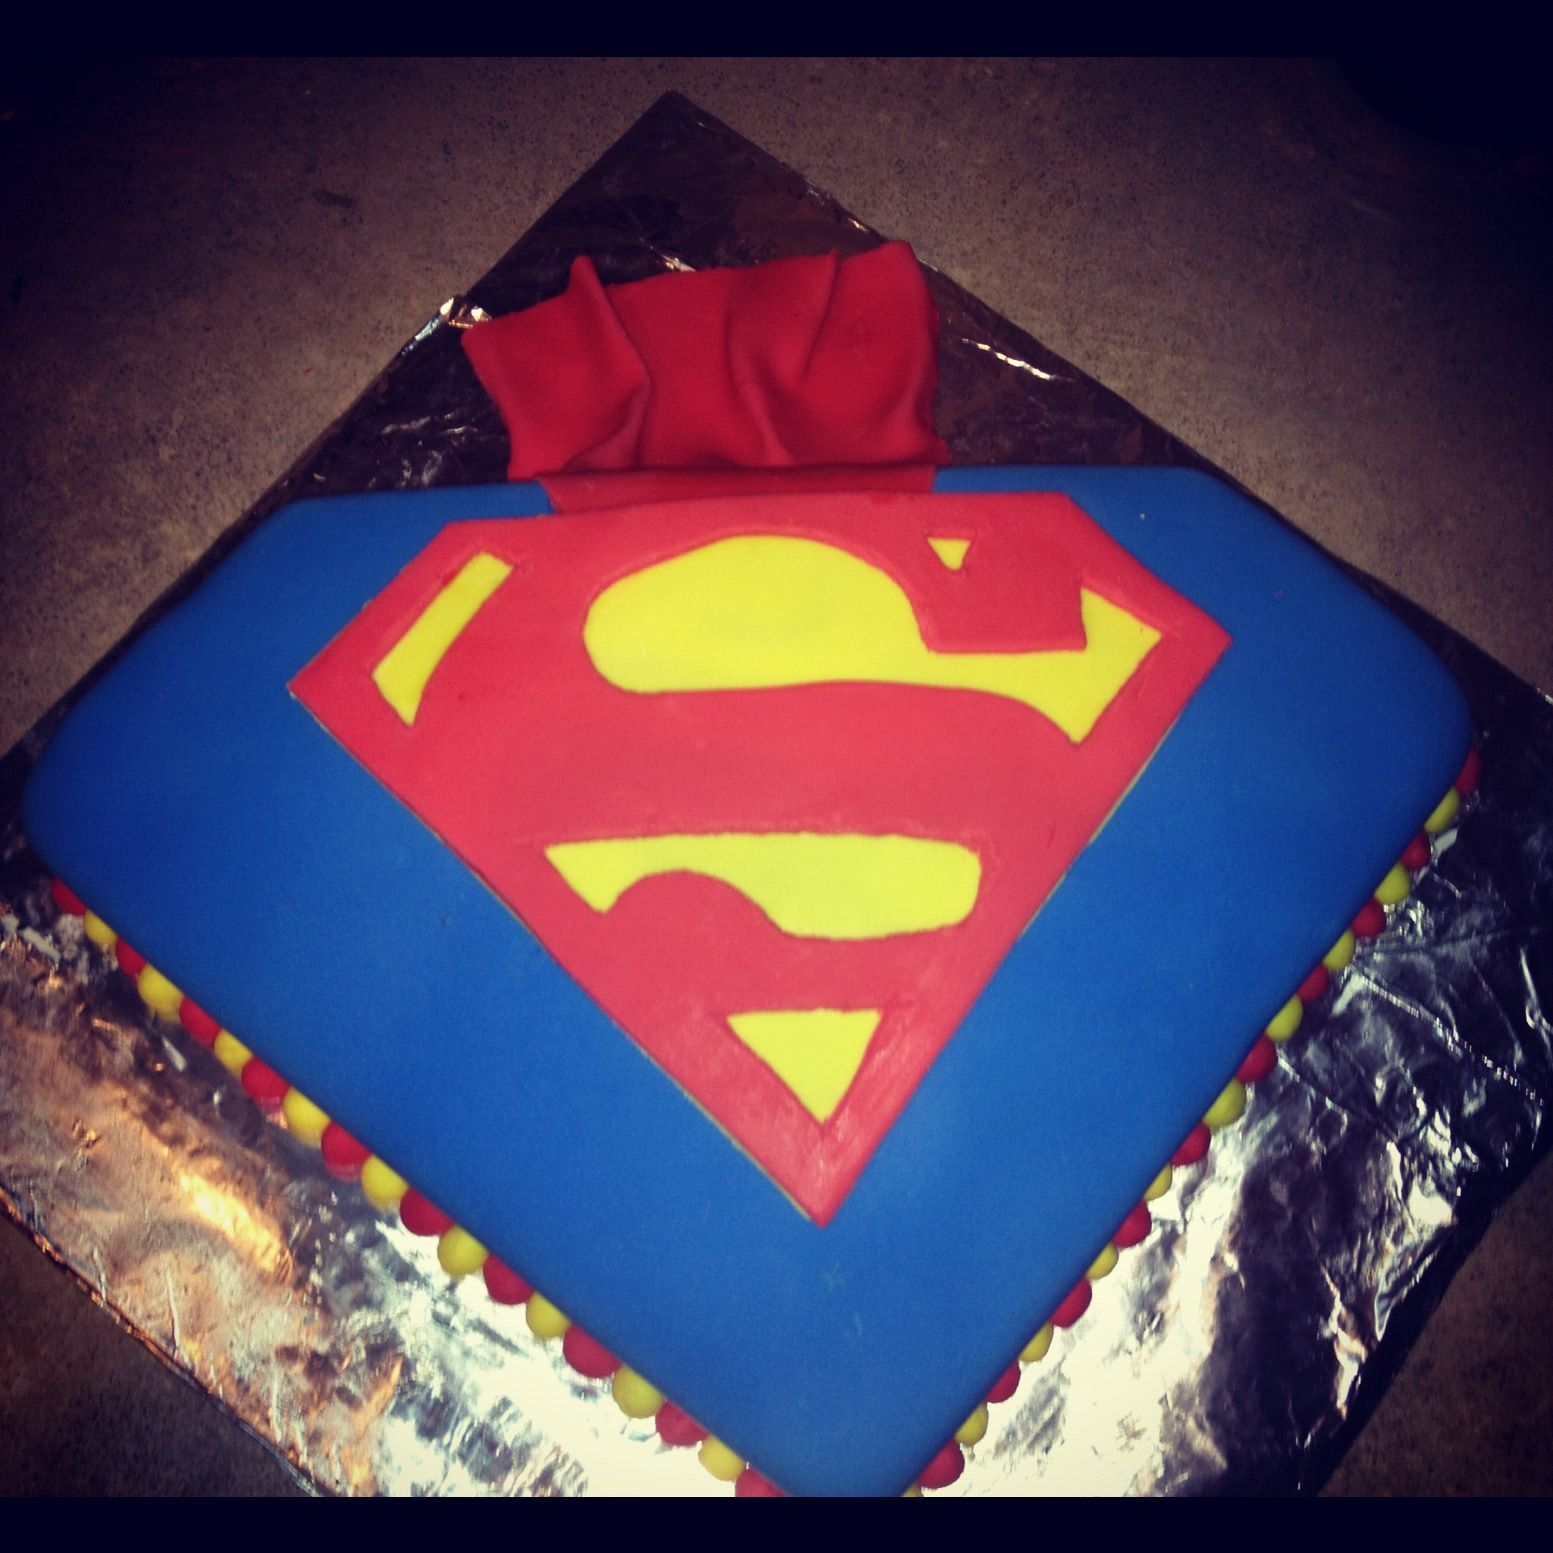 Superman Edible Cake Images : Superman Cake Decorations Cake Ideas and Designs